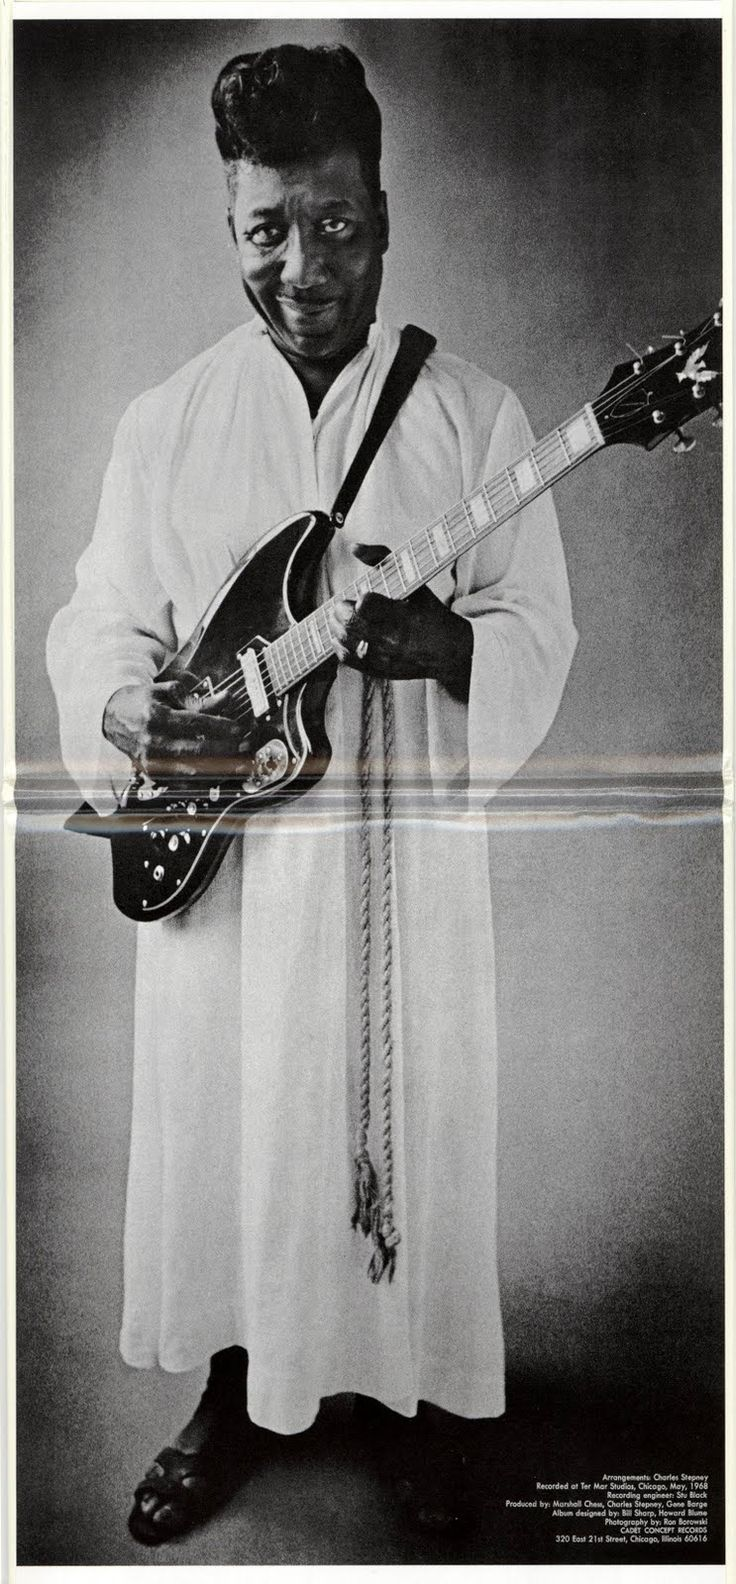 """Inside cover of Muddy Waters' album """"Electric Mud"""" (Cadet Concept Records LPS 314, May 1968). Photo by Ron Borowski."""